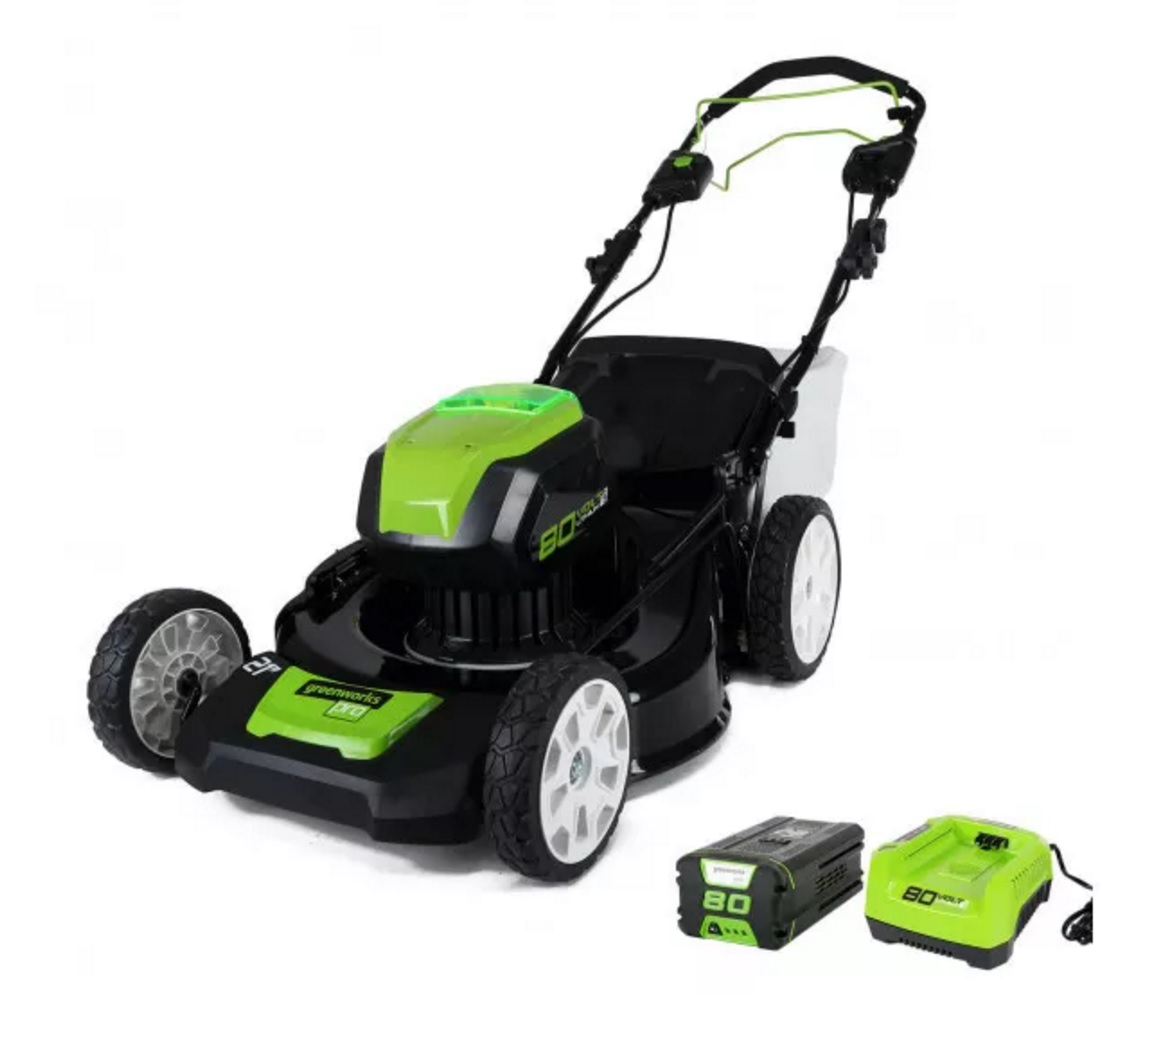 Greenworks 80v Brushless 21 Inch Self Propelled Lawn Mower